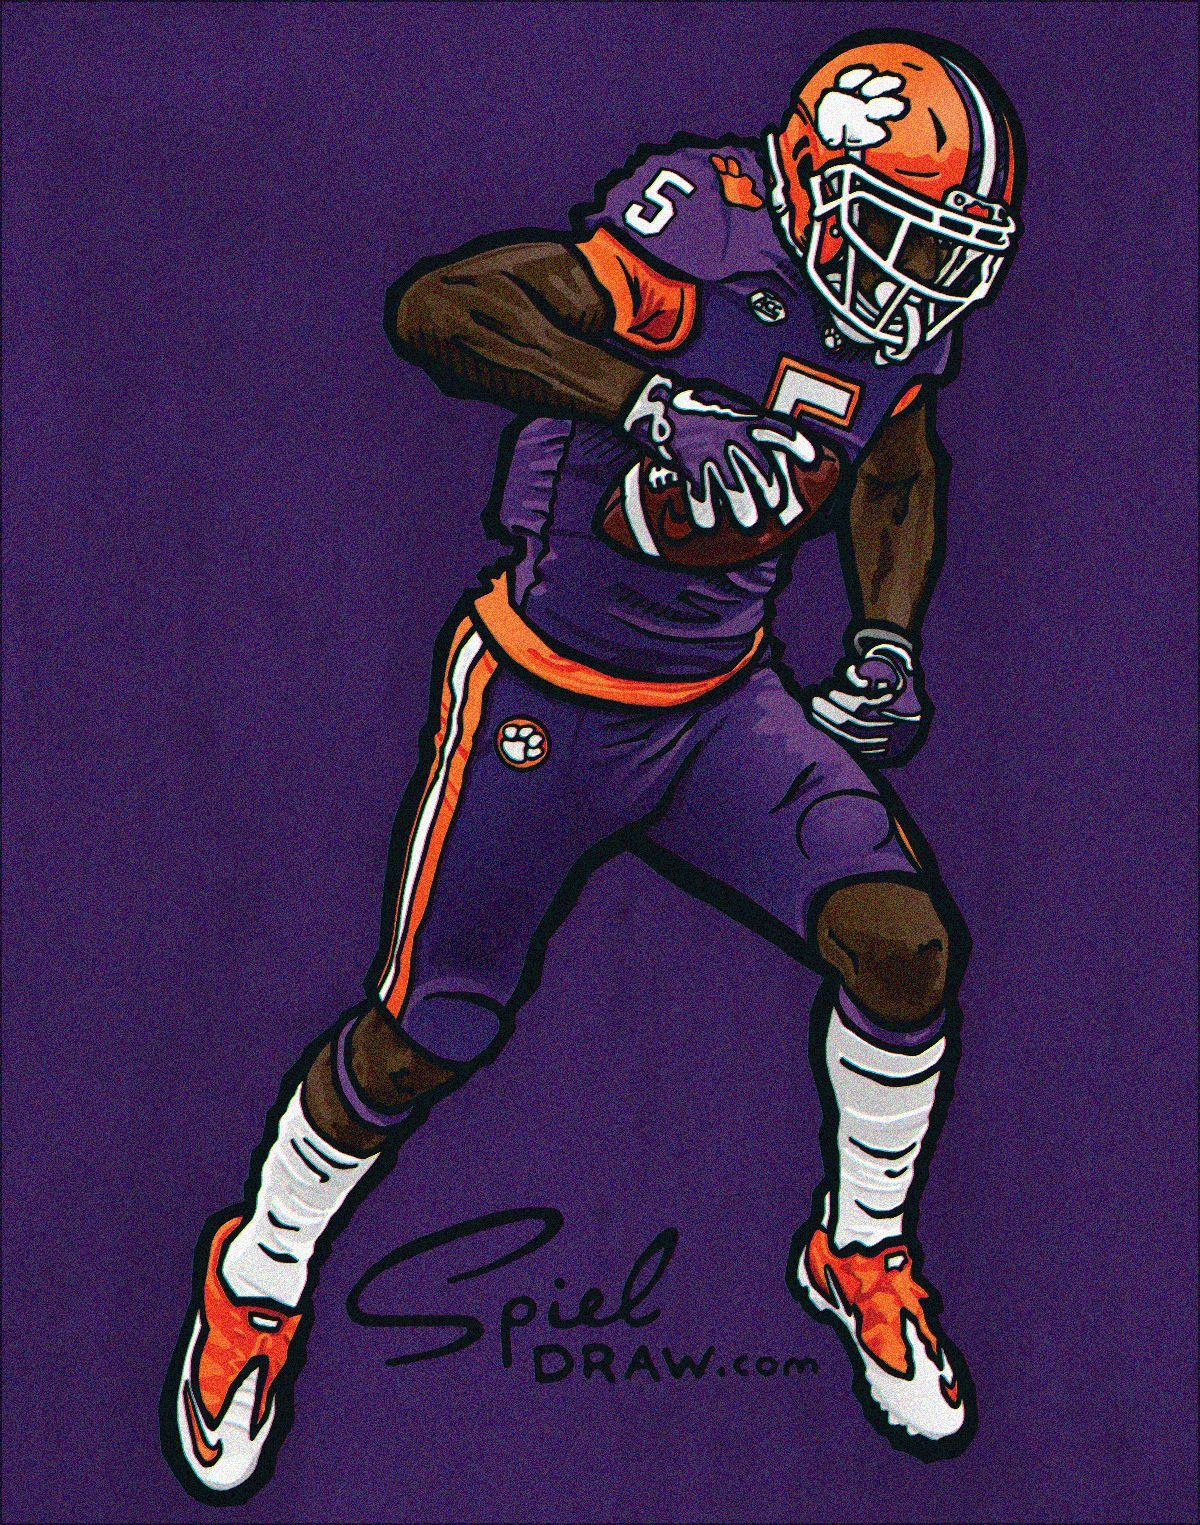 Digital Illustration Of Clemson Wide Receiver Tee Higgins Created With Procreate And Photoshop Nfl Football Art Football Art College Football Art